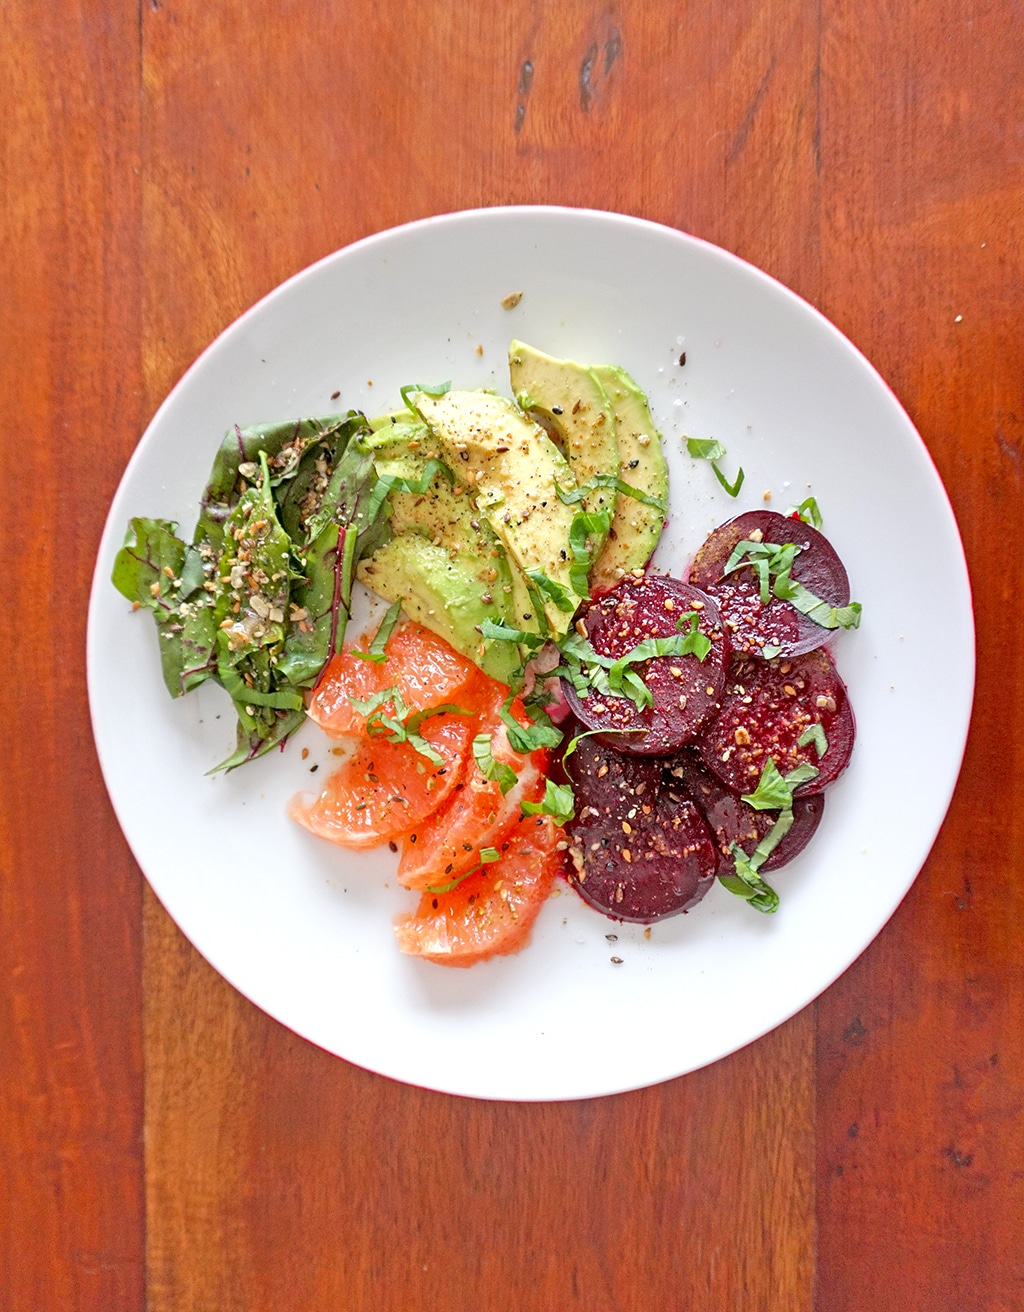 Beet, Citrus and Avocado Salad